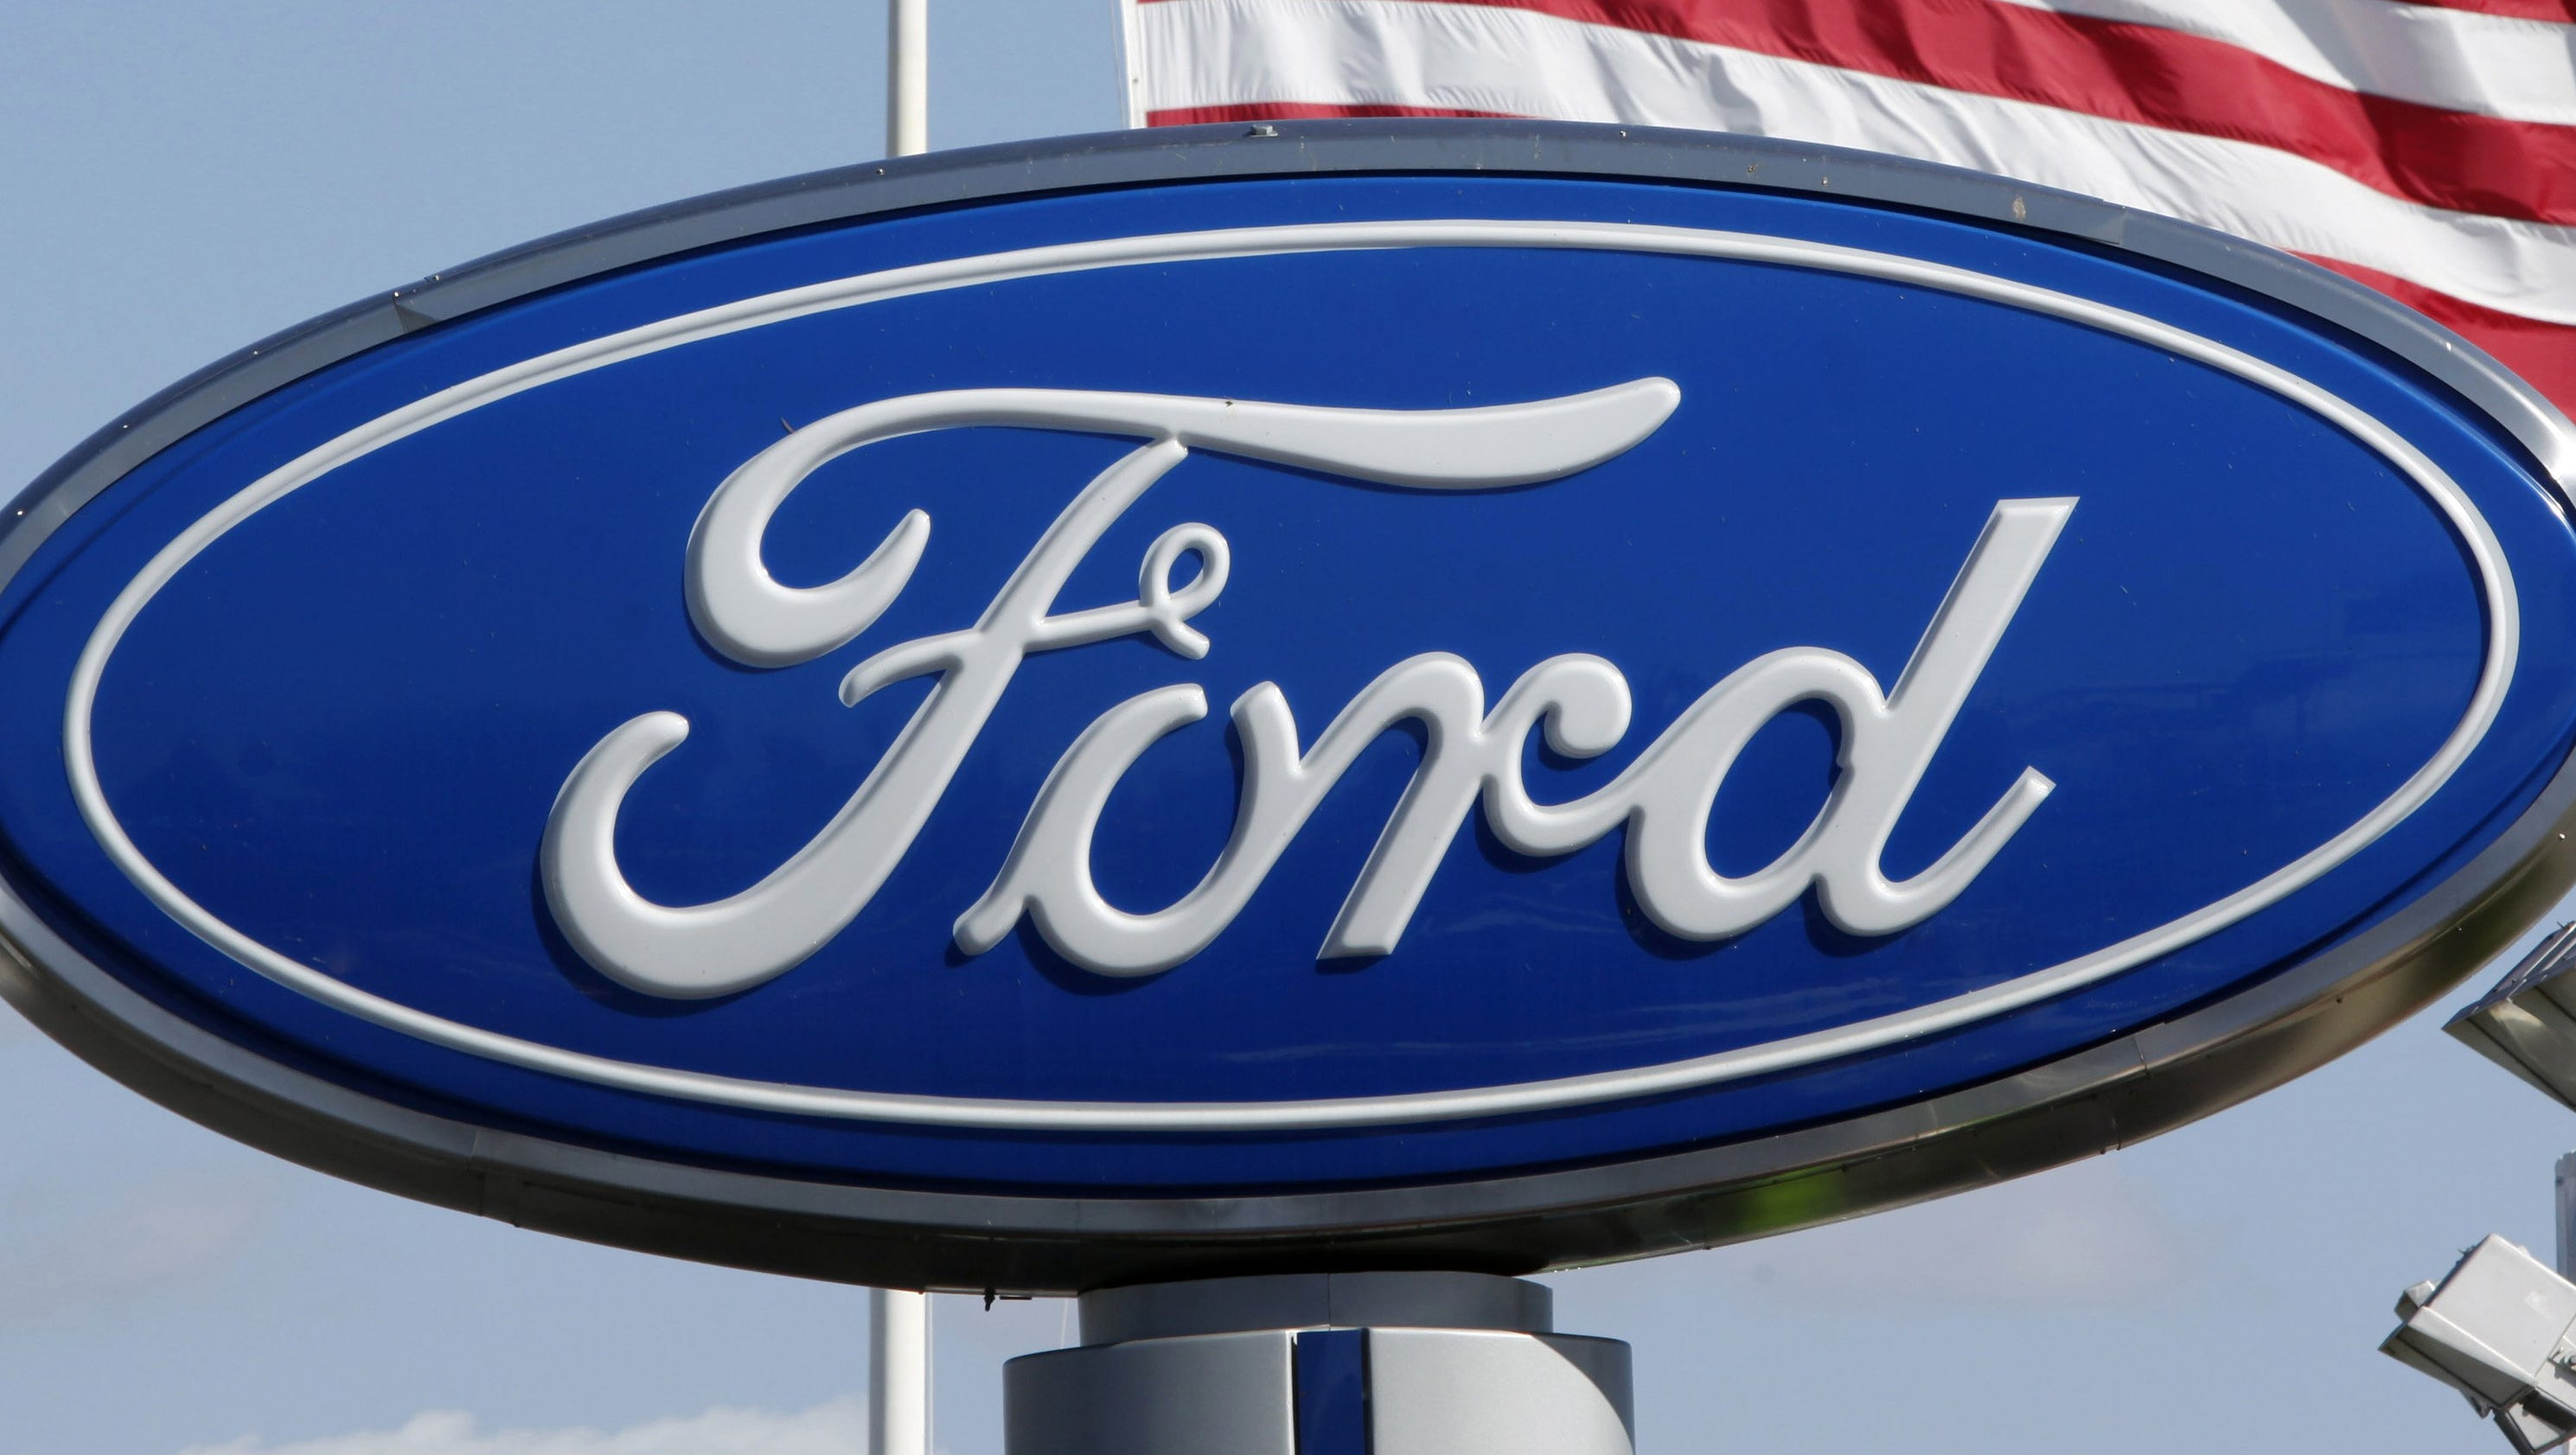 Objectives of ford motor company for Ford motor company annual report